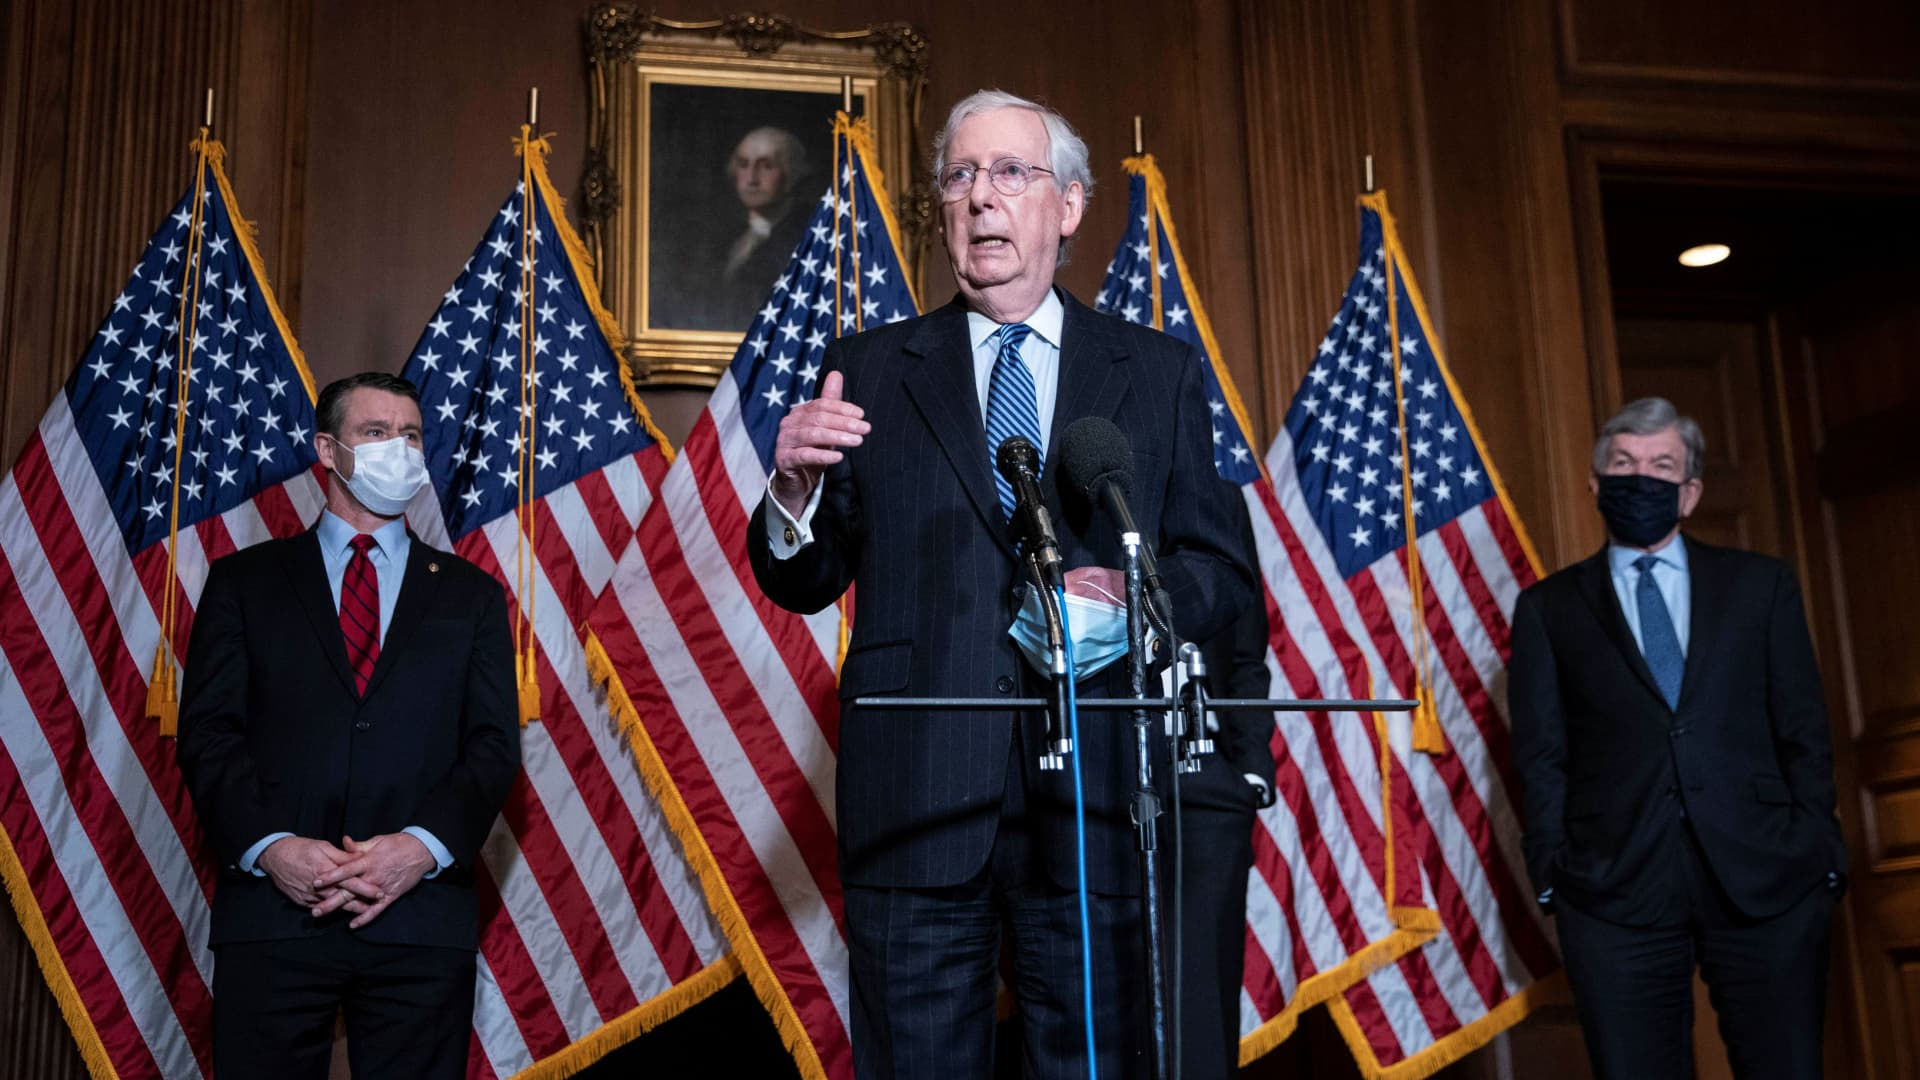 U.S. Senate Majority Leader Mitch McConnell speaks during a news conference after the Republicans' weekly senate luncheon at the U.S. Capitol in Washington, U.S., December 8, 2020.